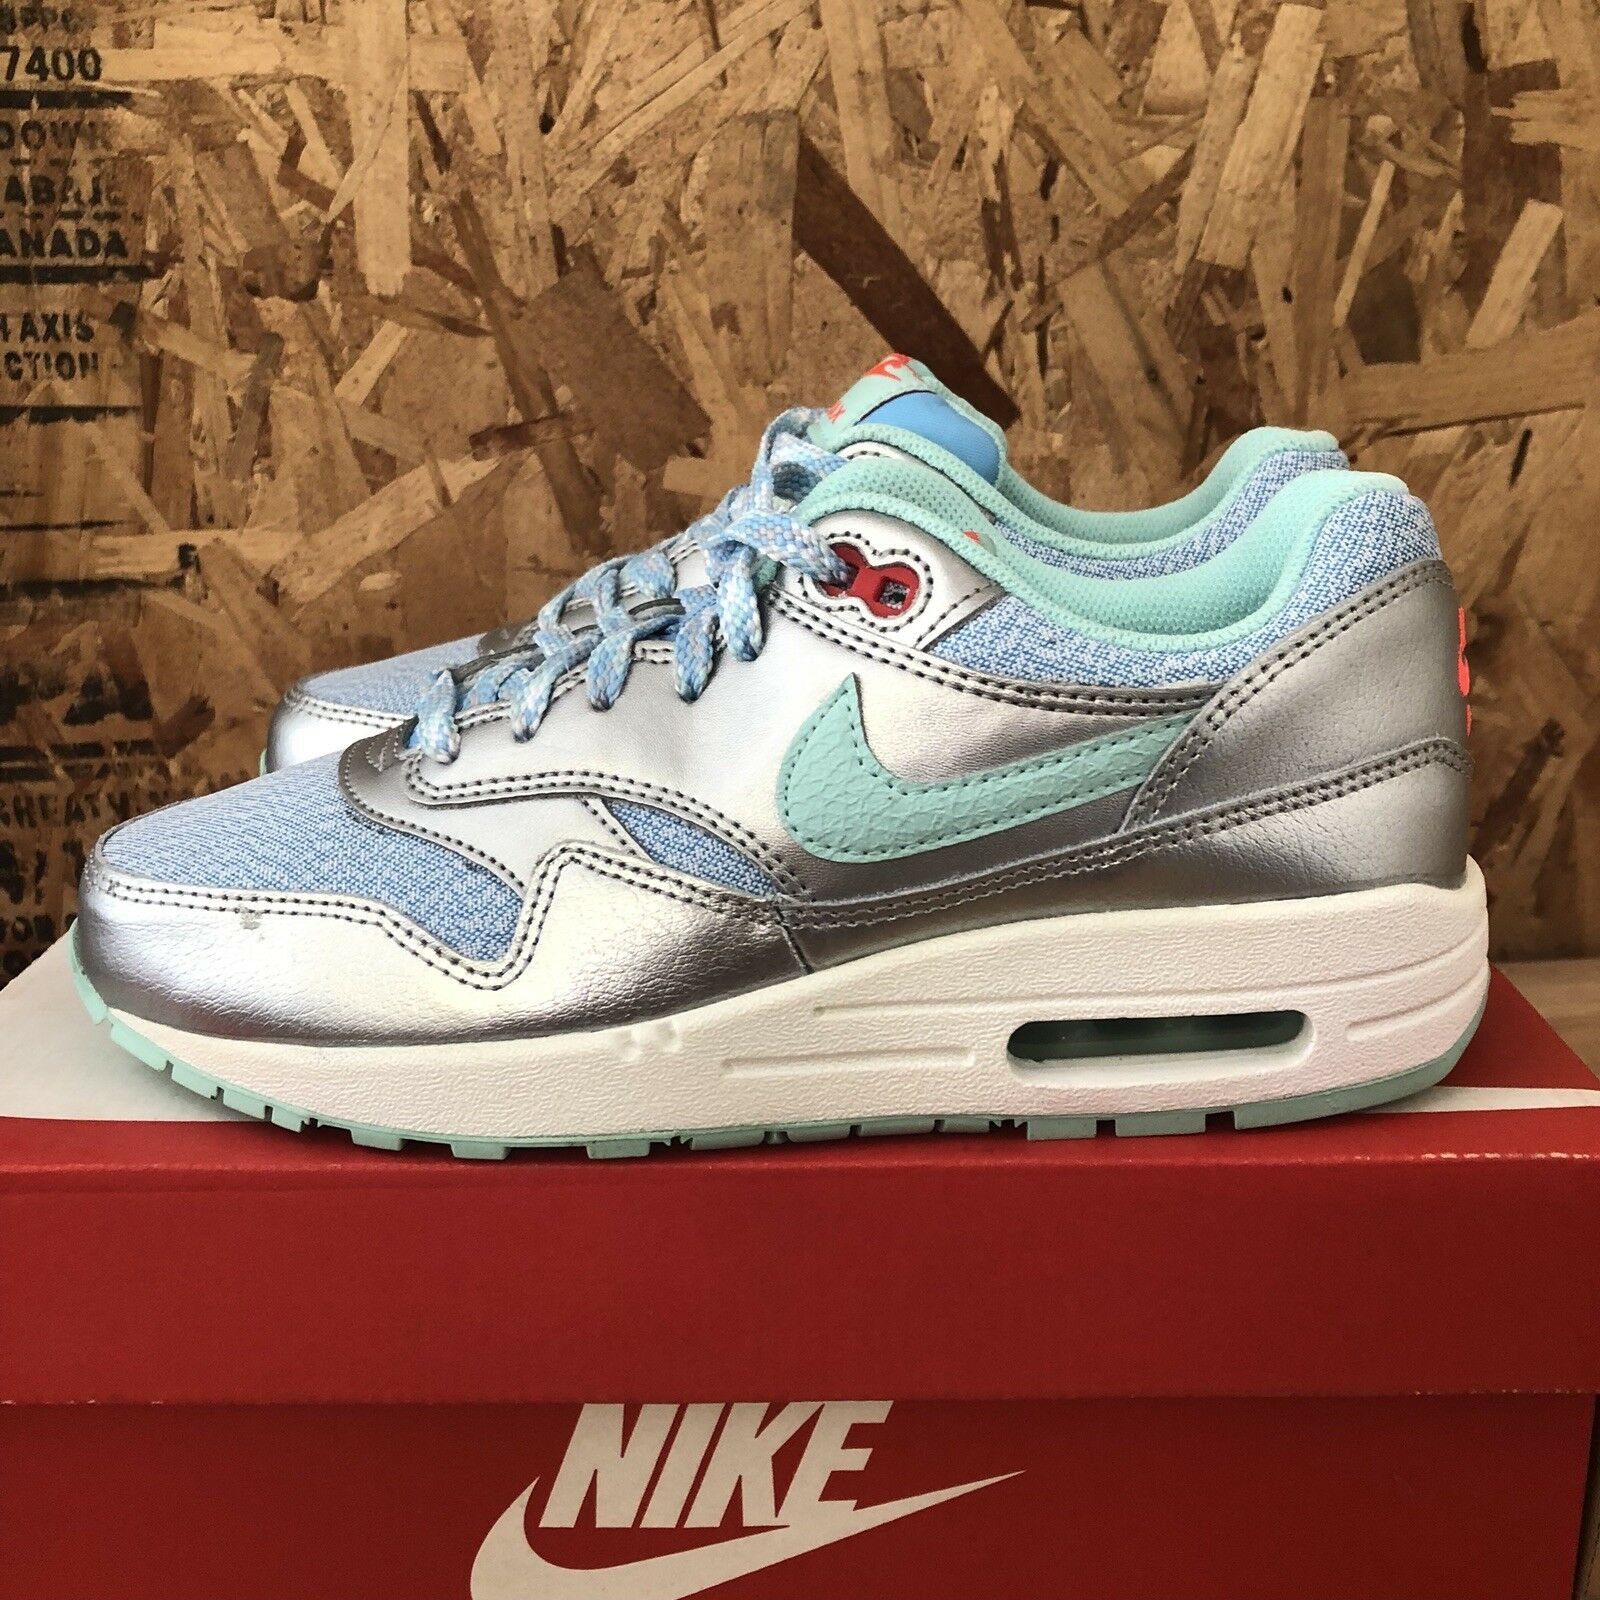 Nike Air Max 1 (GS) Youth - Metallic Silver  bluee  Turquoise - 5Y New 653653-401